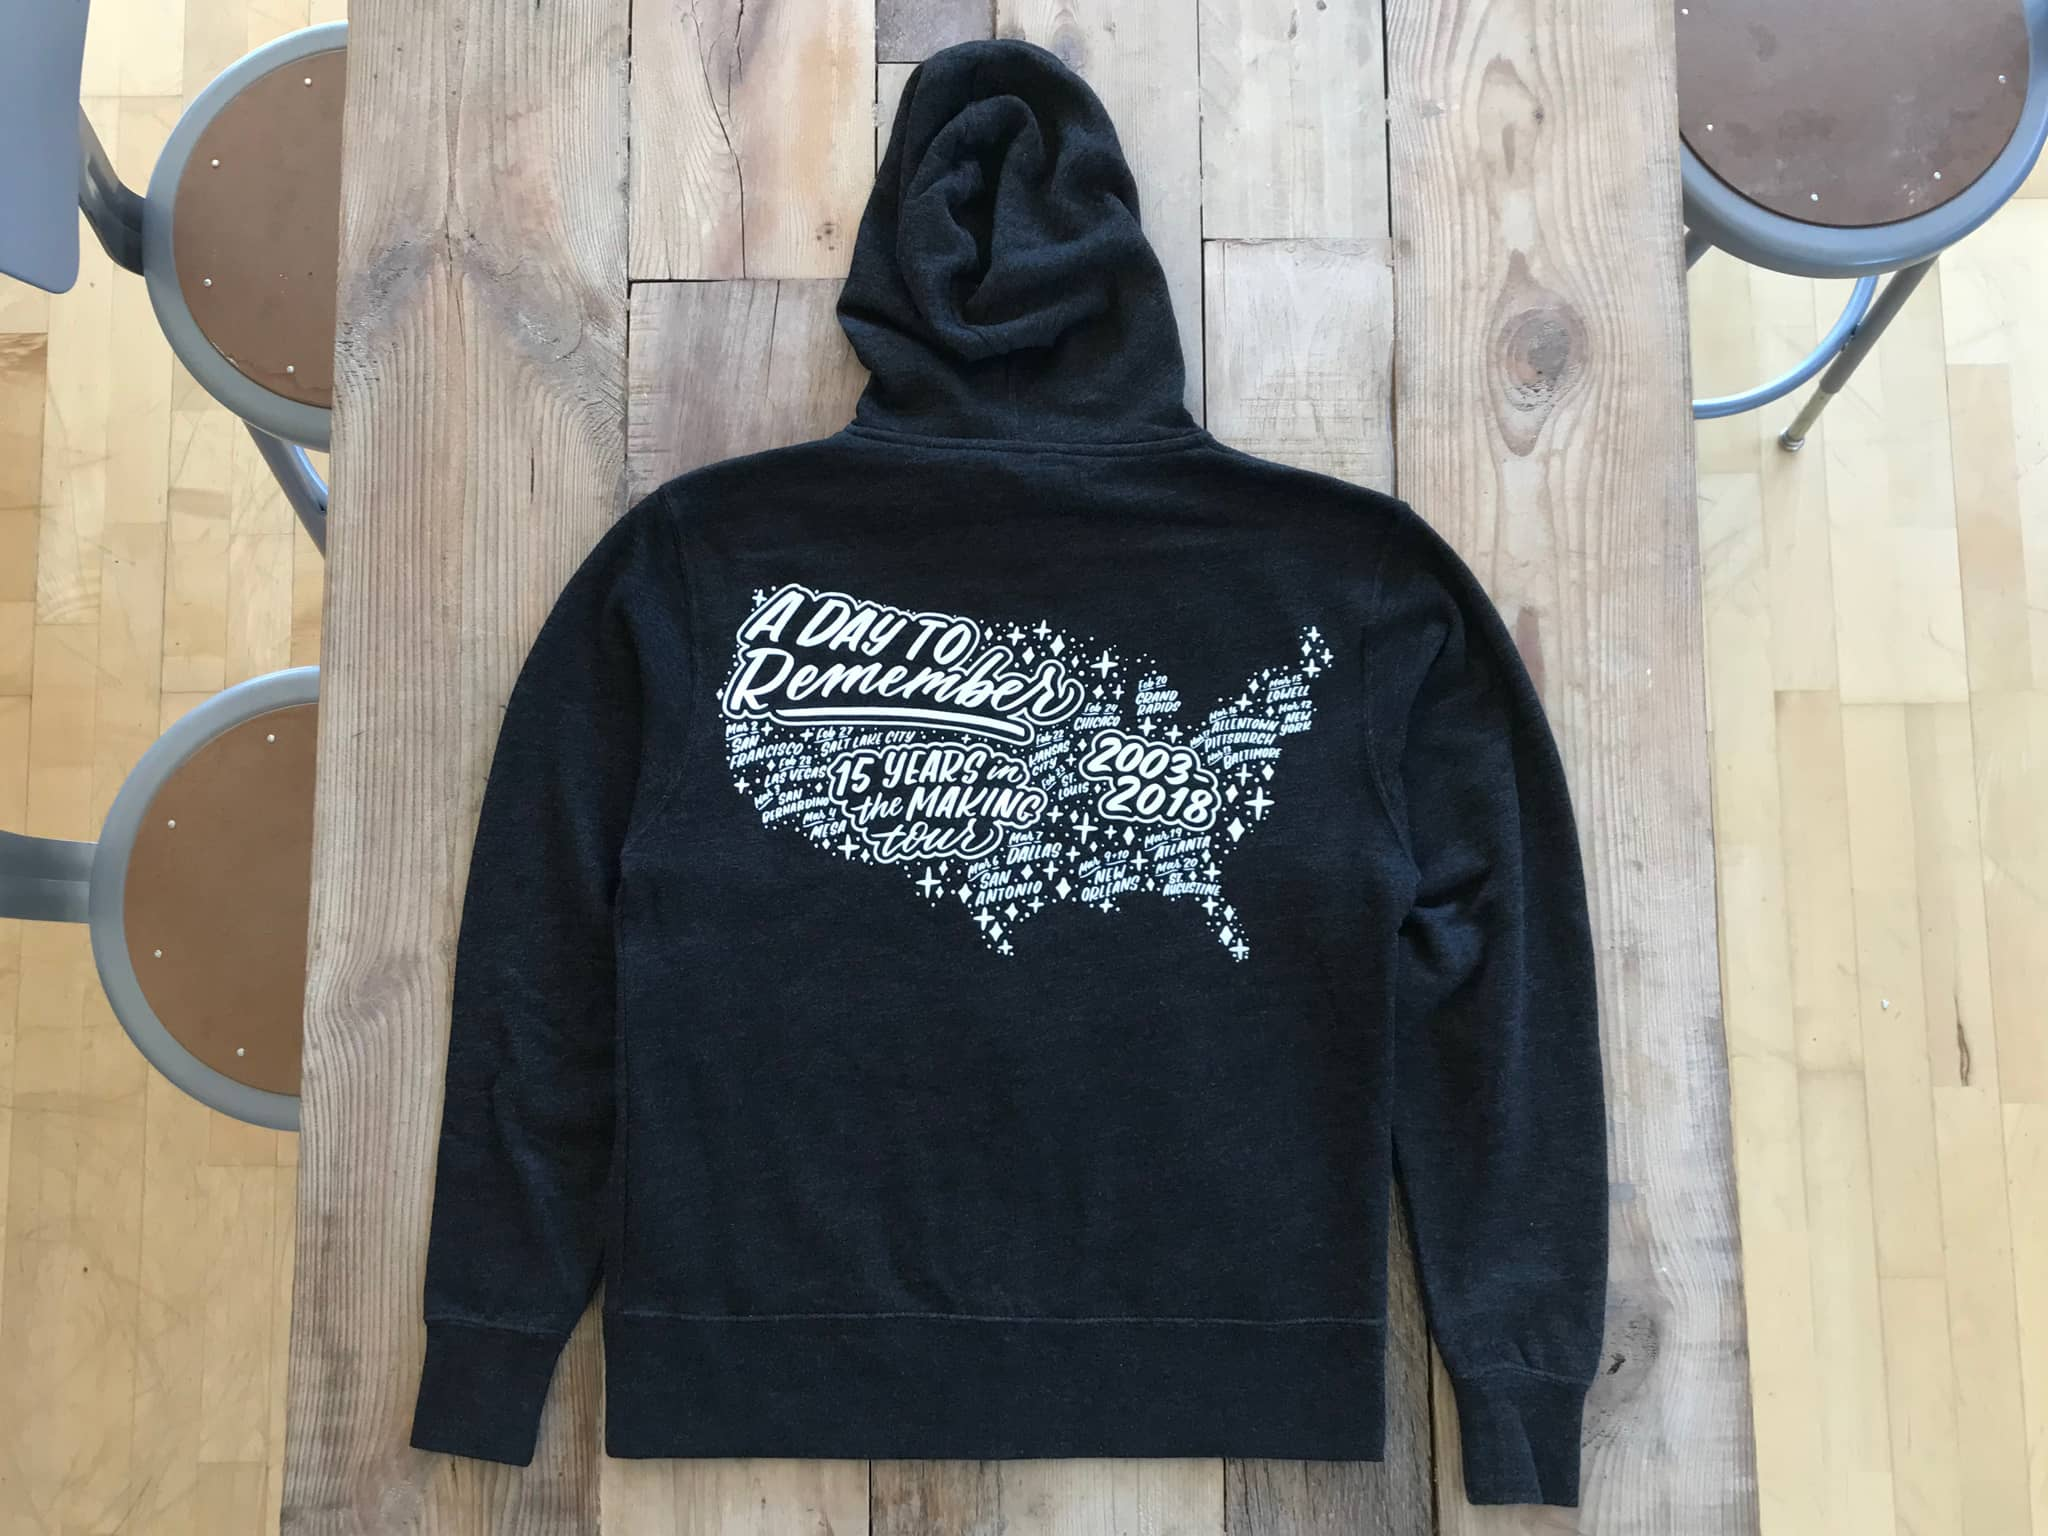 A Day to Remember 15-year tour hoodie hand lettered